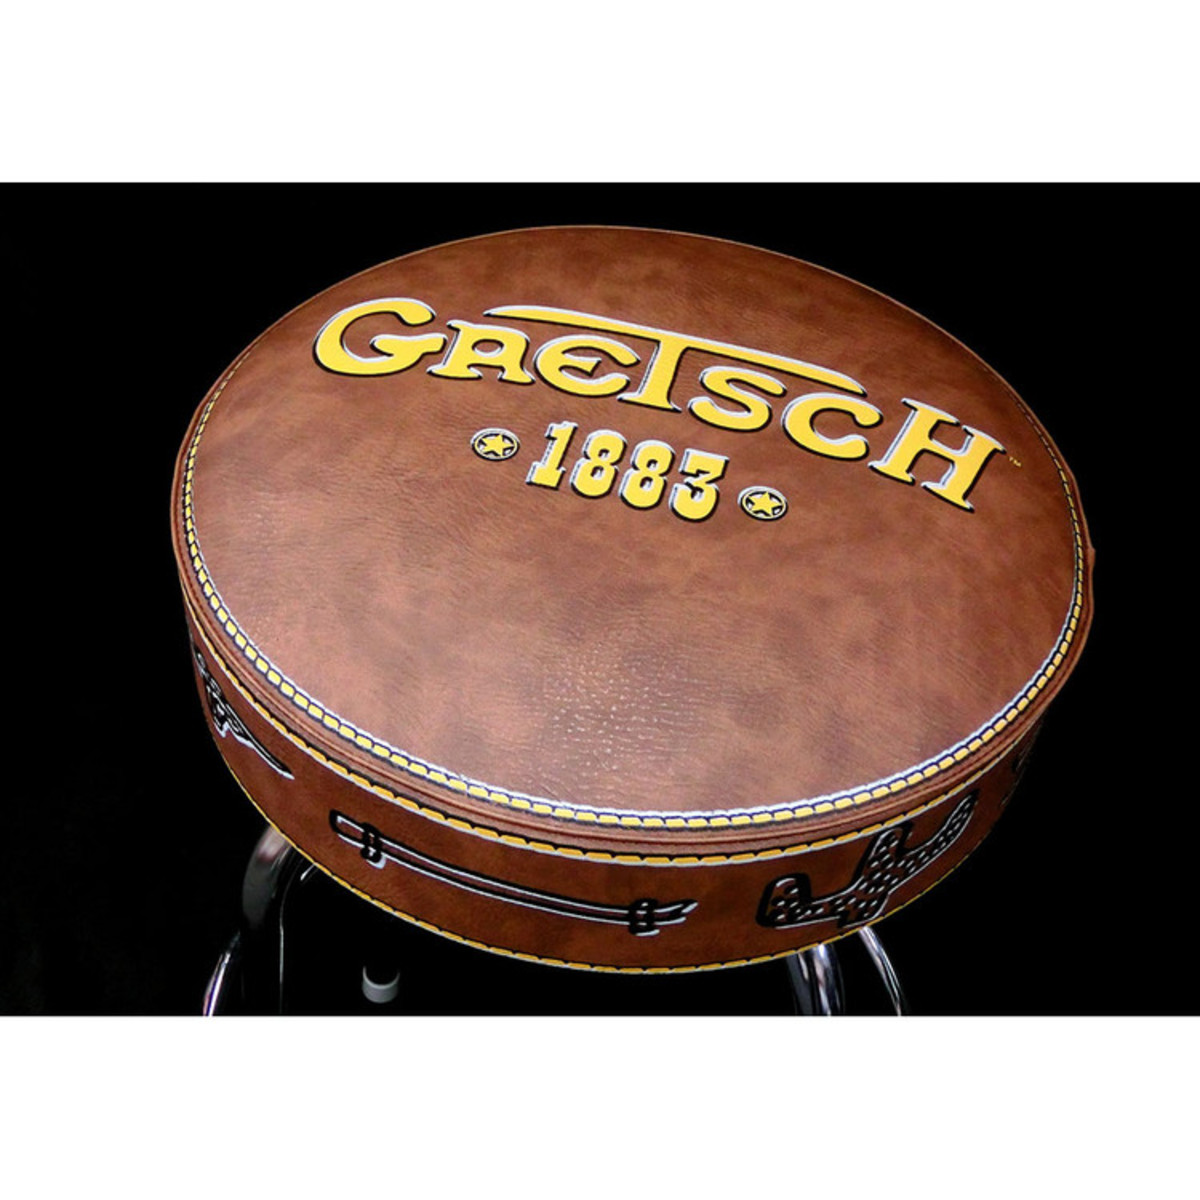 Gretsch 1883 Tabouret De Bar 24 Pouces 224 Gear4music Com